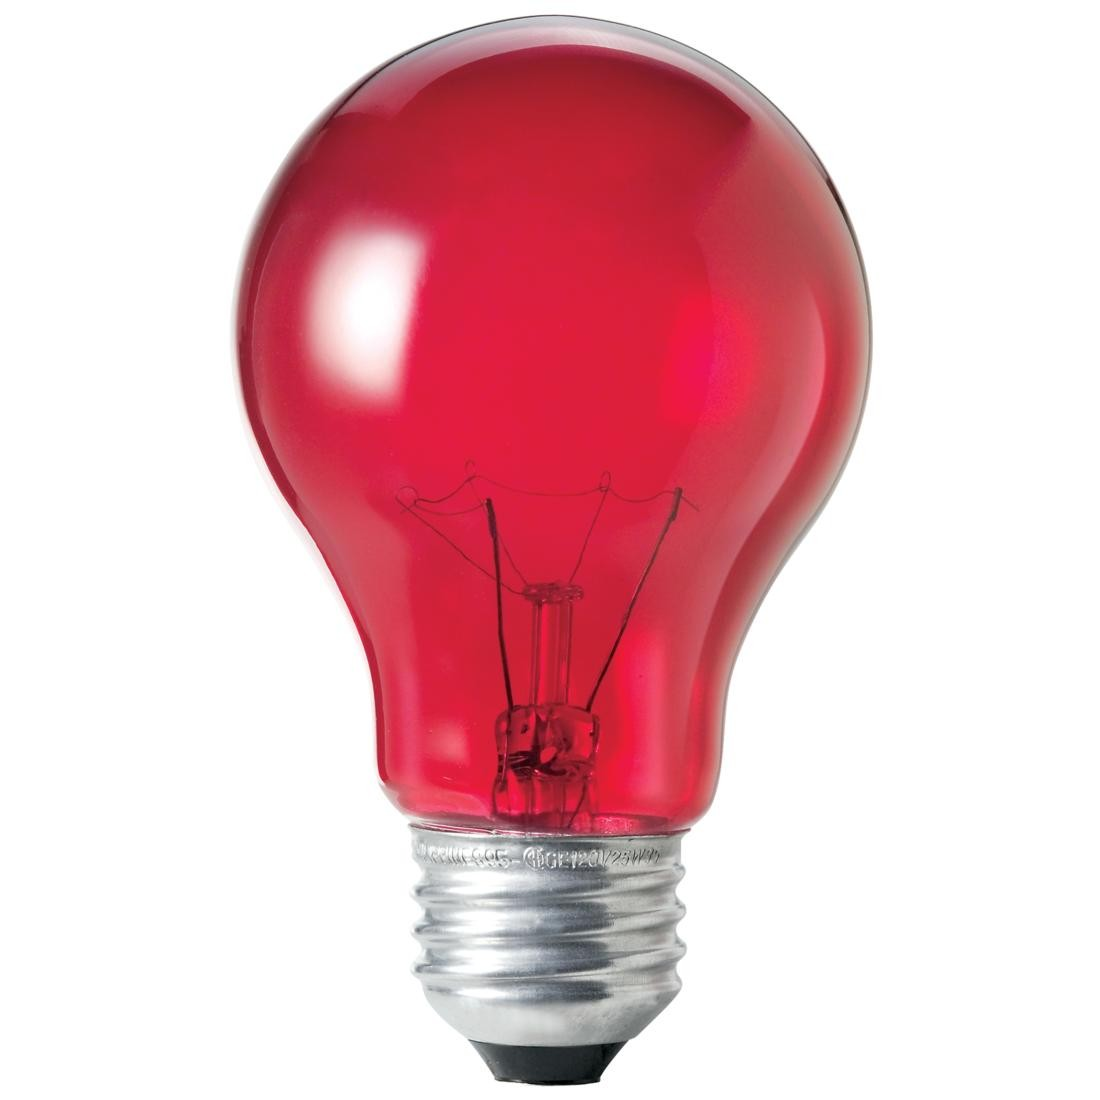 A19red25t A19 Transparent Red Incandescent Bulb